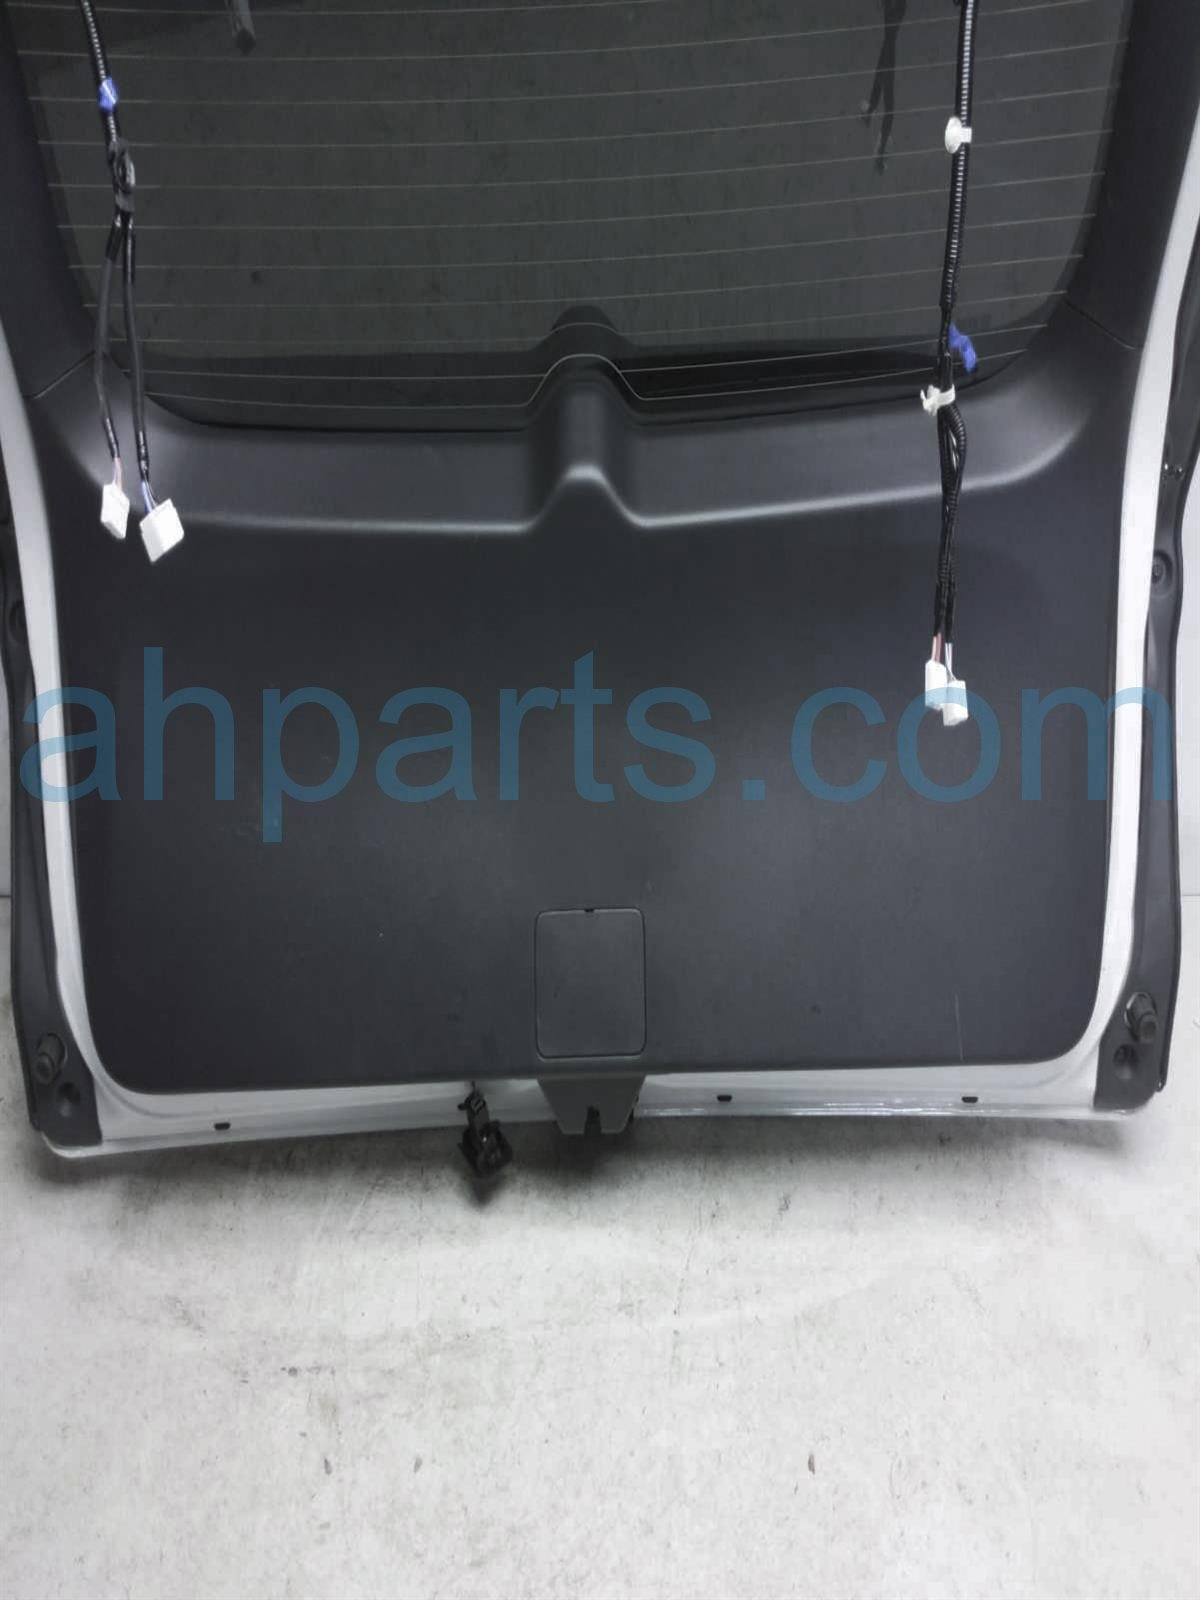 2019 Honda Passport Deck Trunk Lid Lift Gate / Tail Gate   White 68100 TGS A01ZZ Replacement